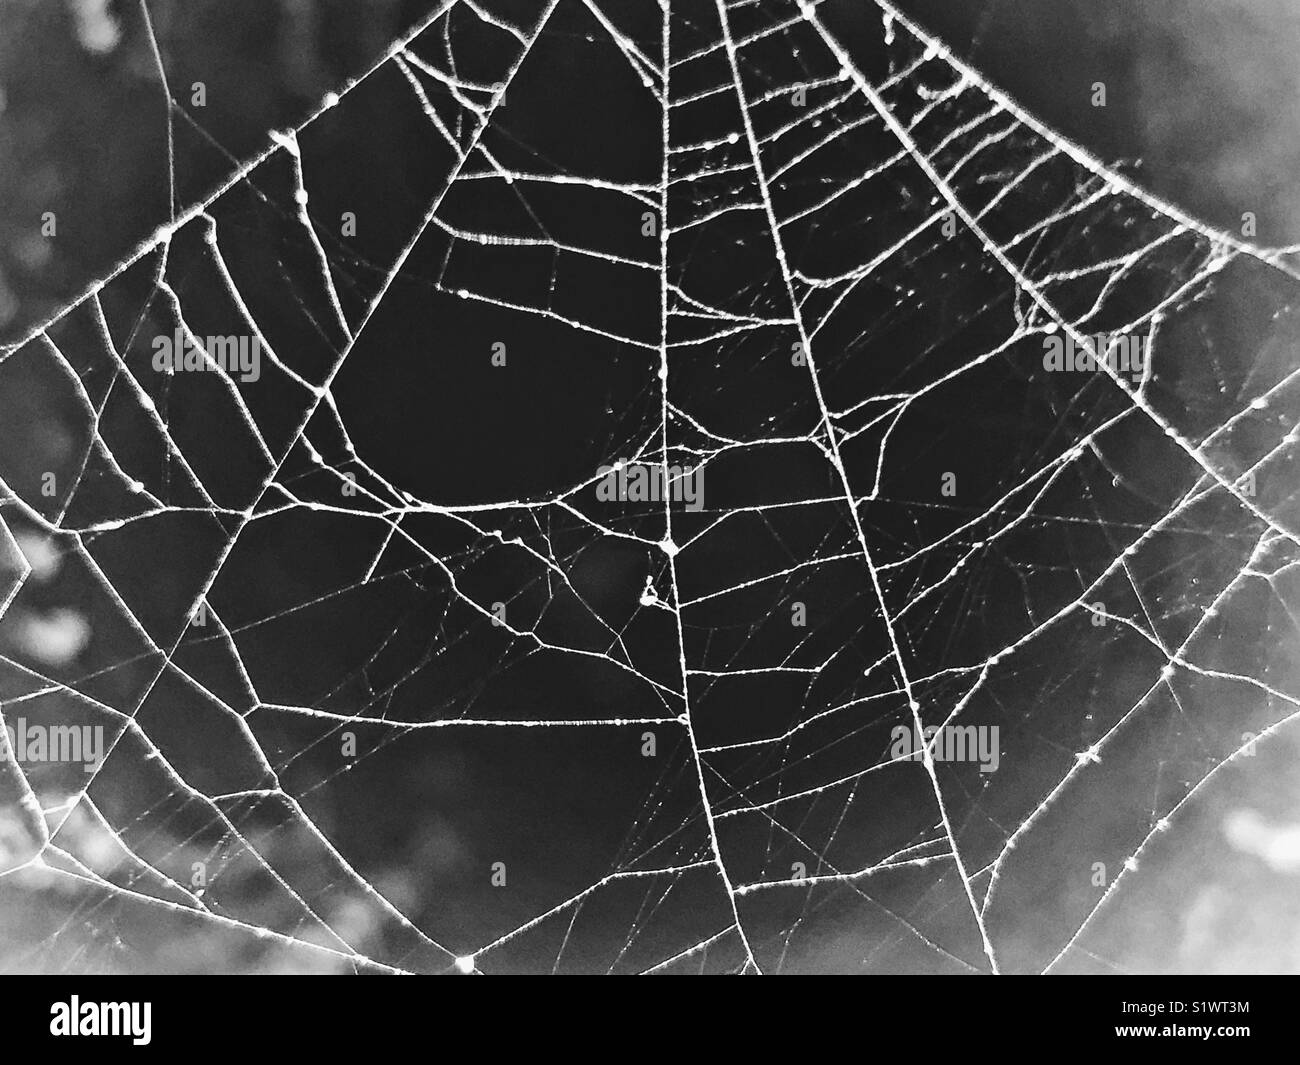 spider web design black and white stock photos images alamy